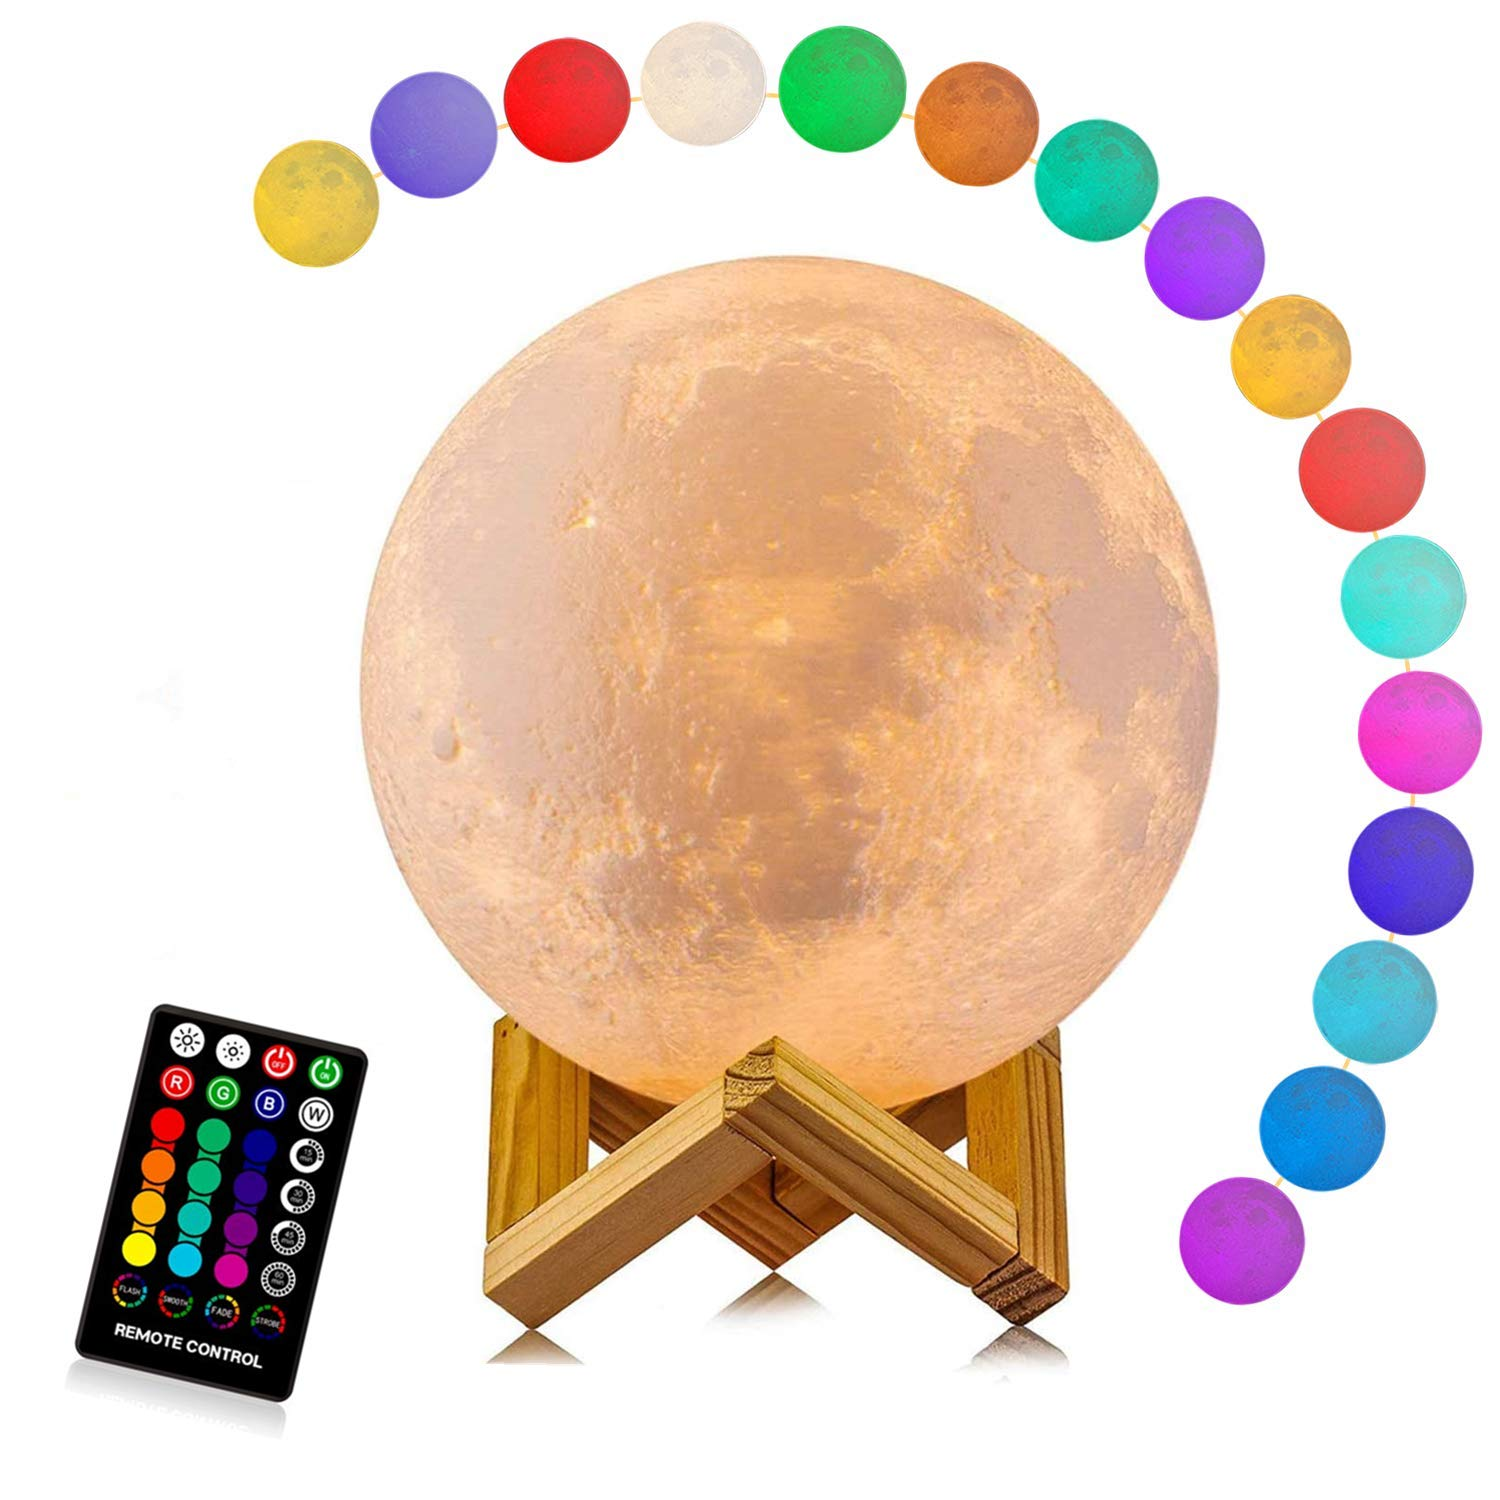 3d lamp fortnite game chug jug scar rocket launcher gliding led night light 7 color change touch mood lamp ZK22 Children's Lights Night Lamp LED Night Light 3D Print Moon Lamp Rechargeable Color Change 3D Light Touch Moon Lamp for Home